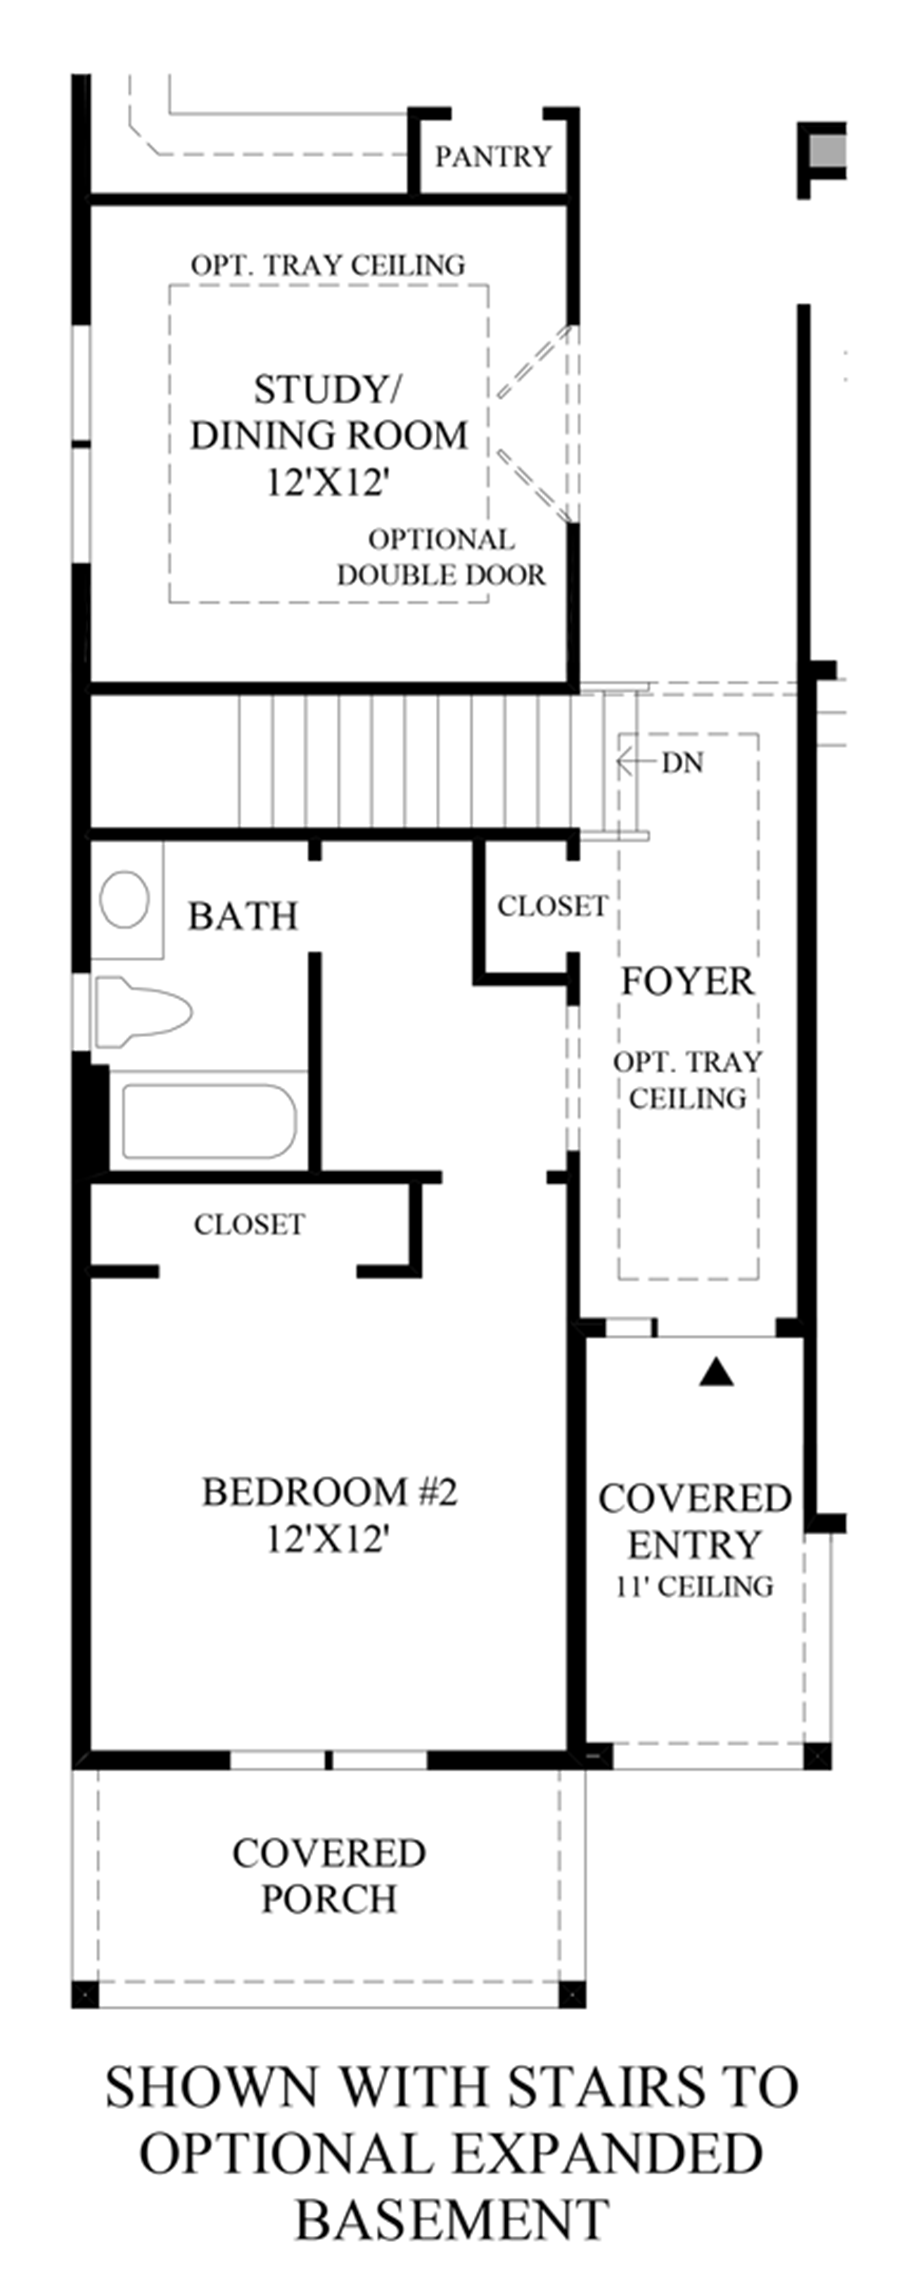 Stairs to Optional Expanded Basement Floor Plan